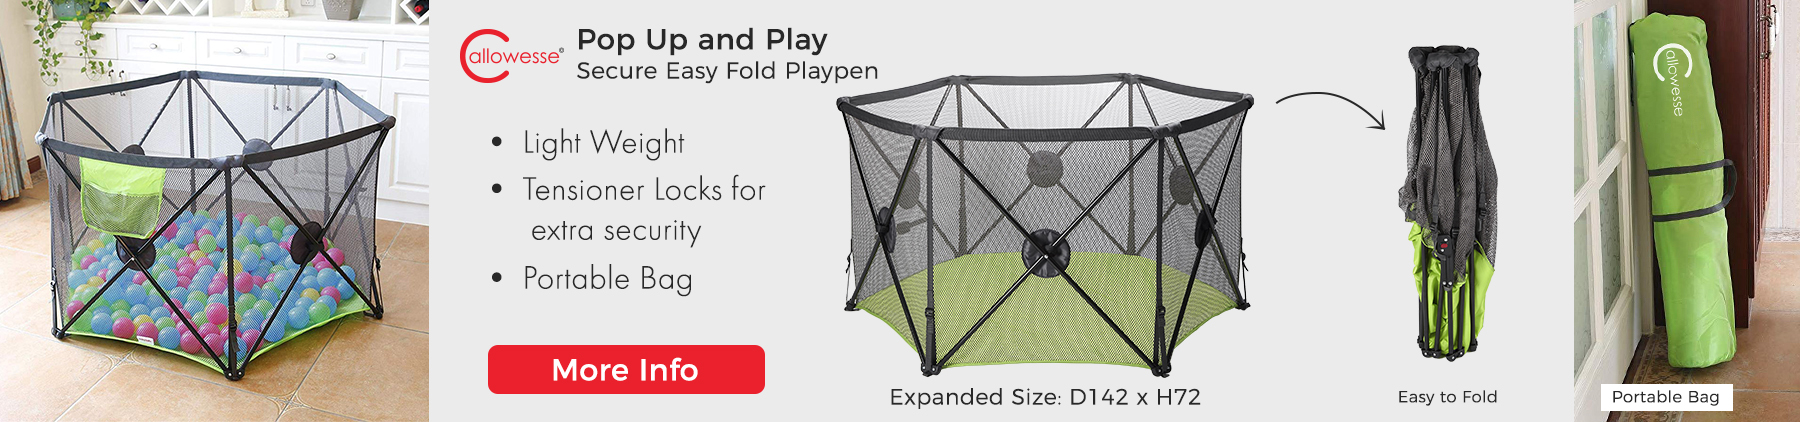 Pop Up and Play